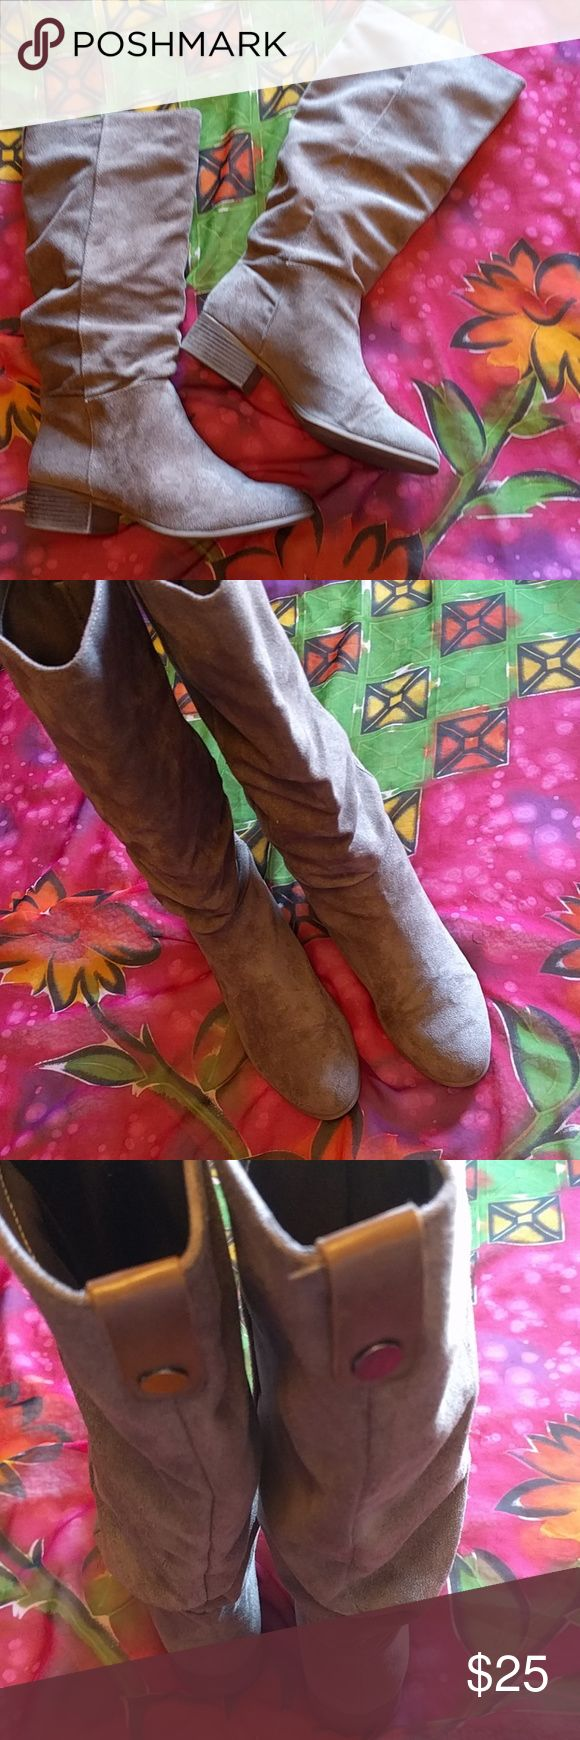 Merona size 9 boots Man made suede boots, color is a light tan stone. No damage, hardly worn. Merona Shoes Heeled Boots